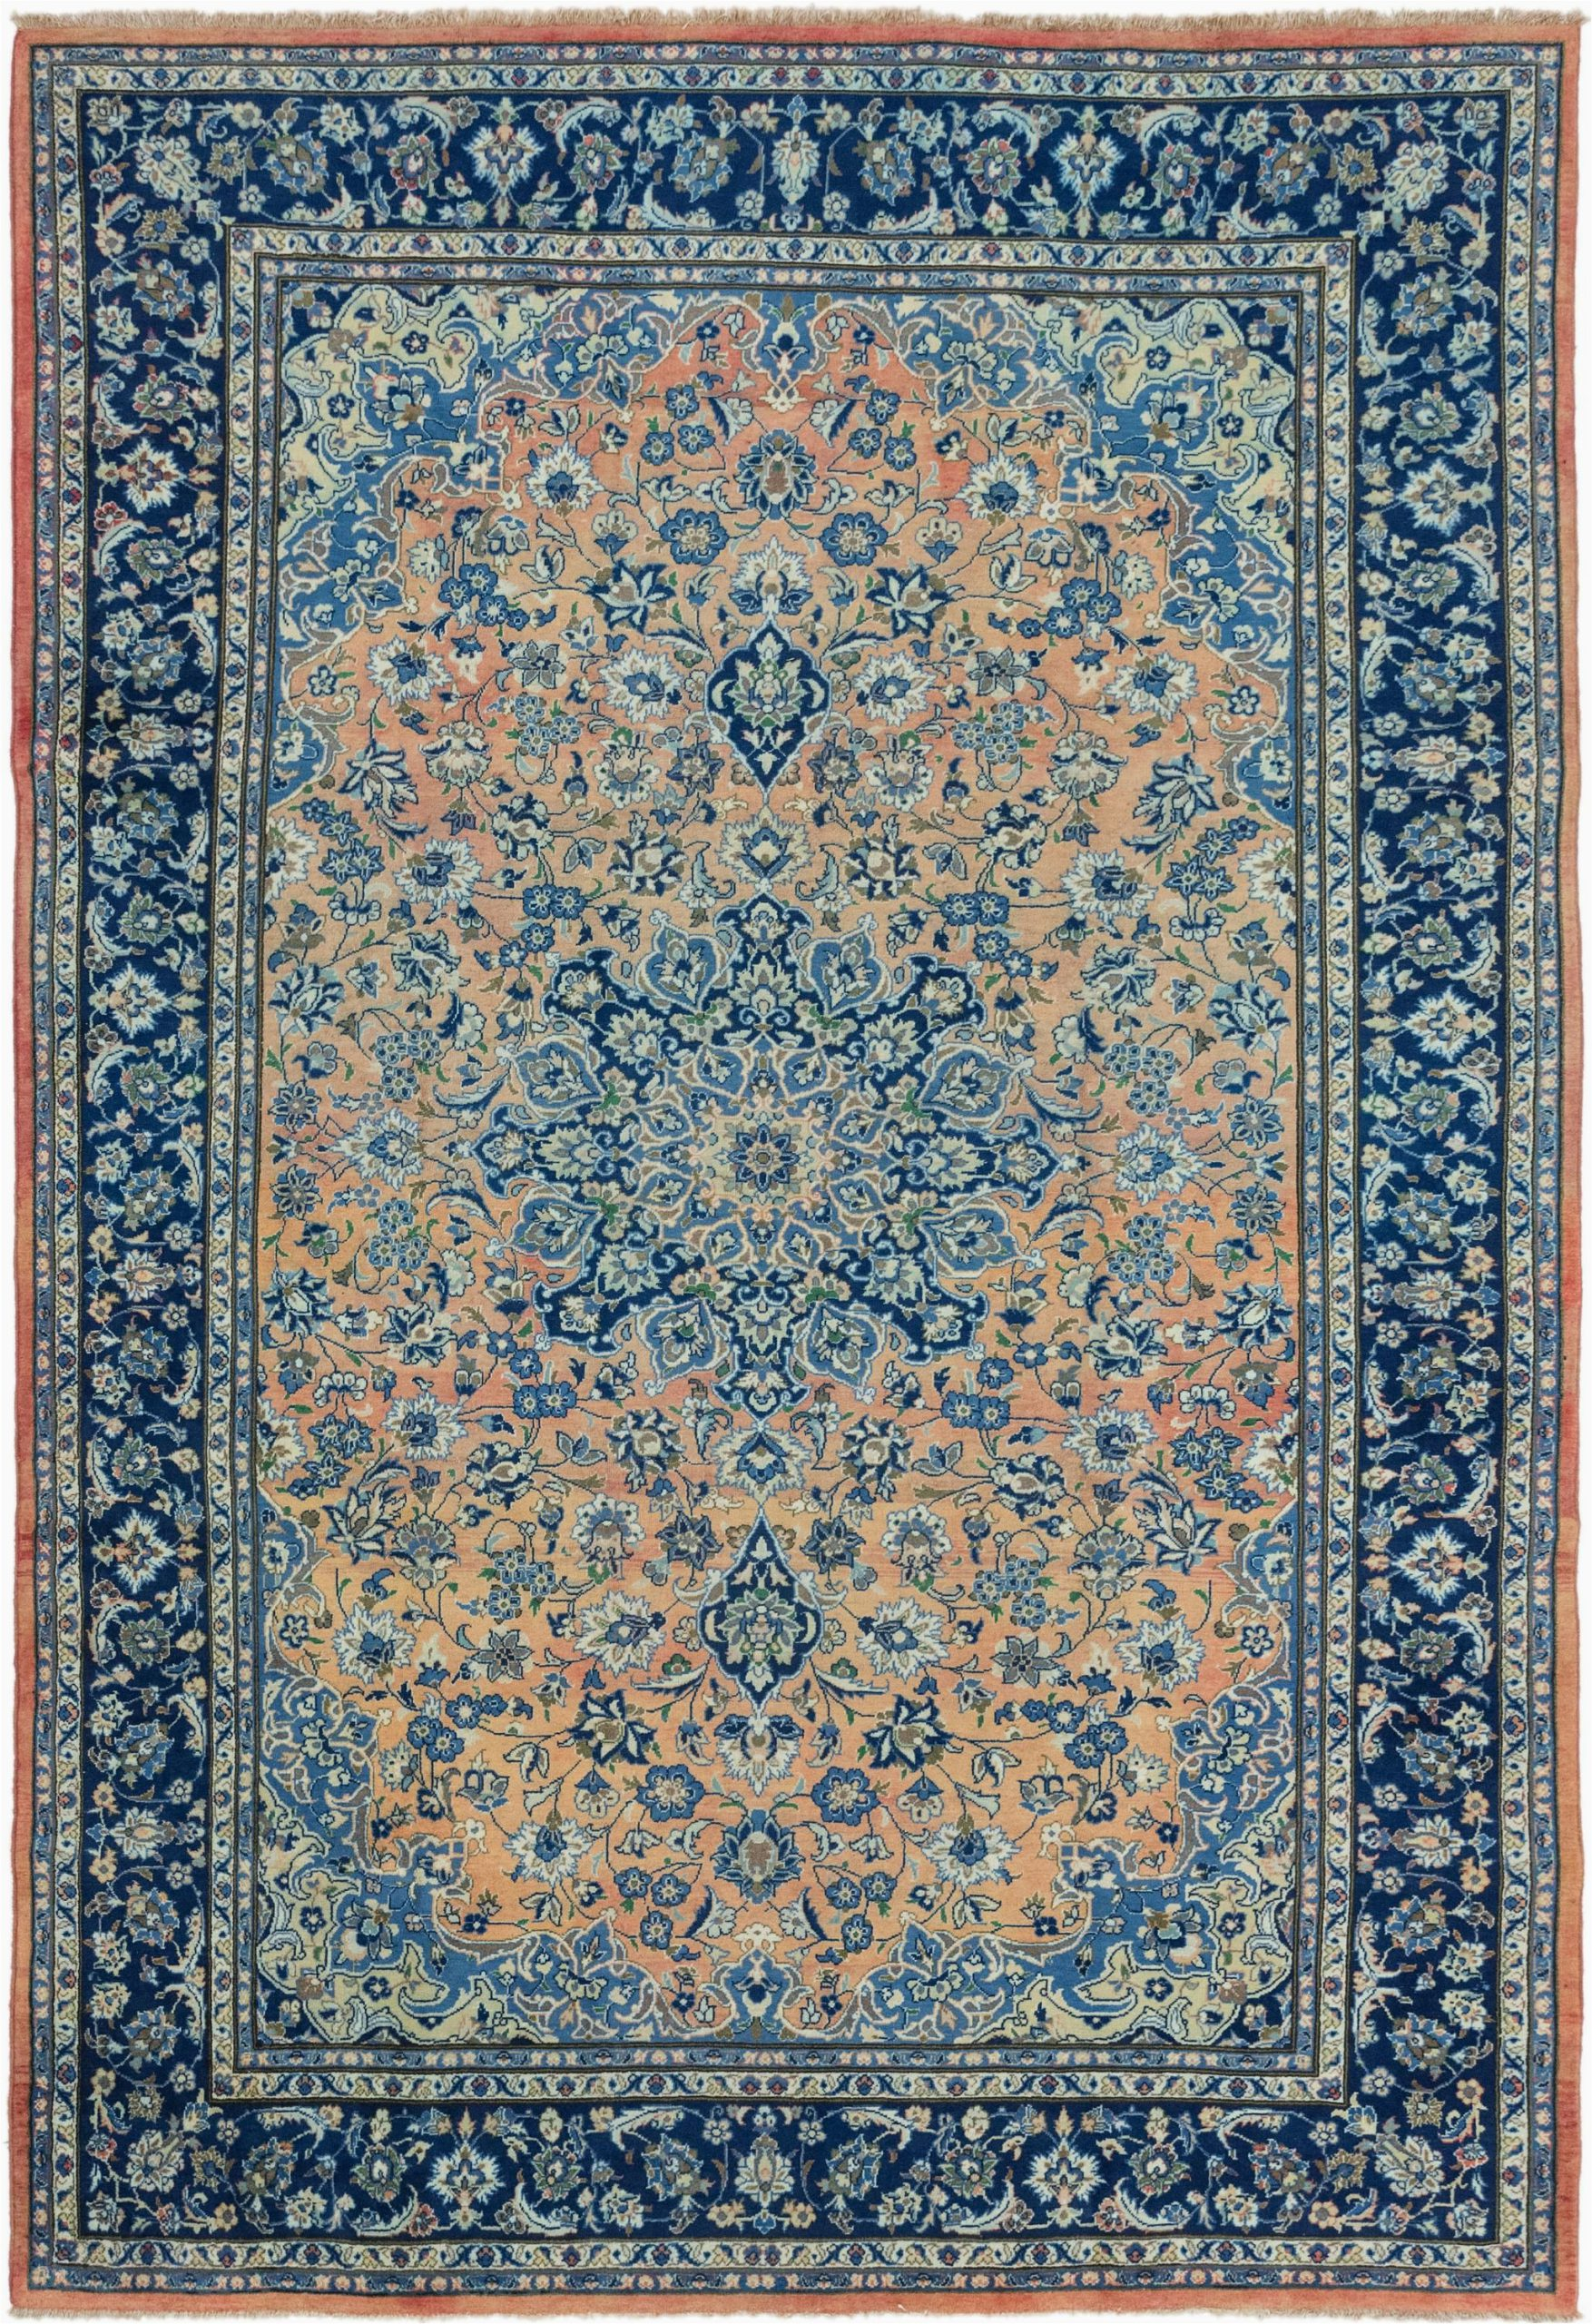 Cheap 10 by 12 area Rugs 8 4 X 12 10 isfahan Persian Rug